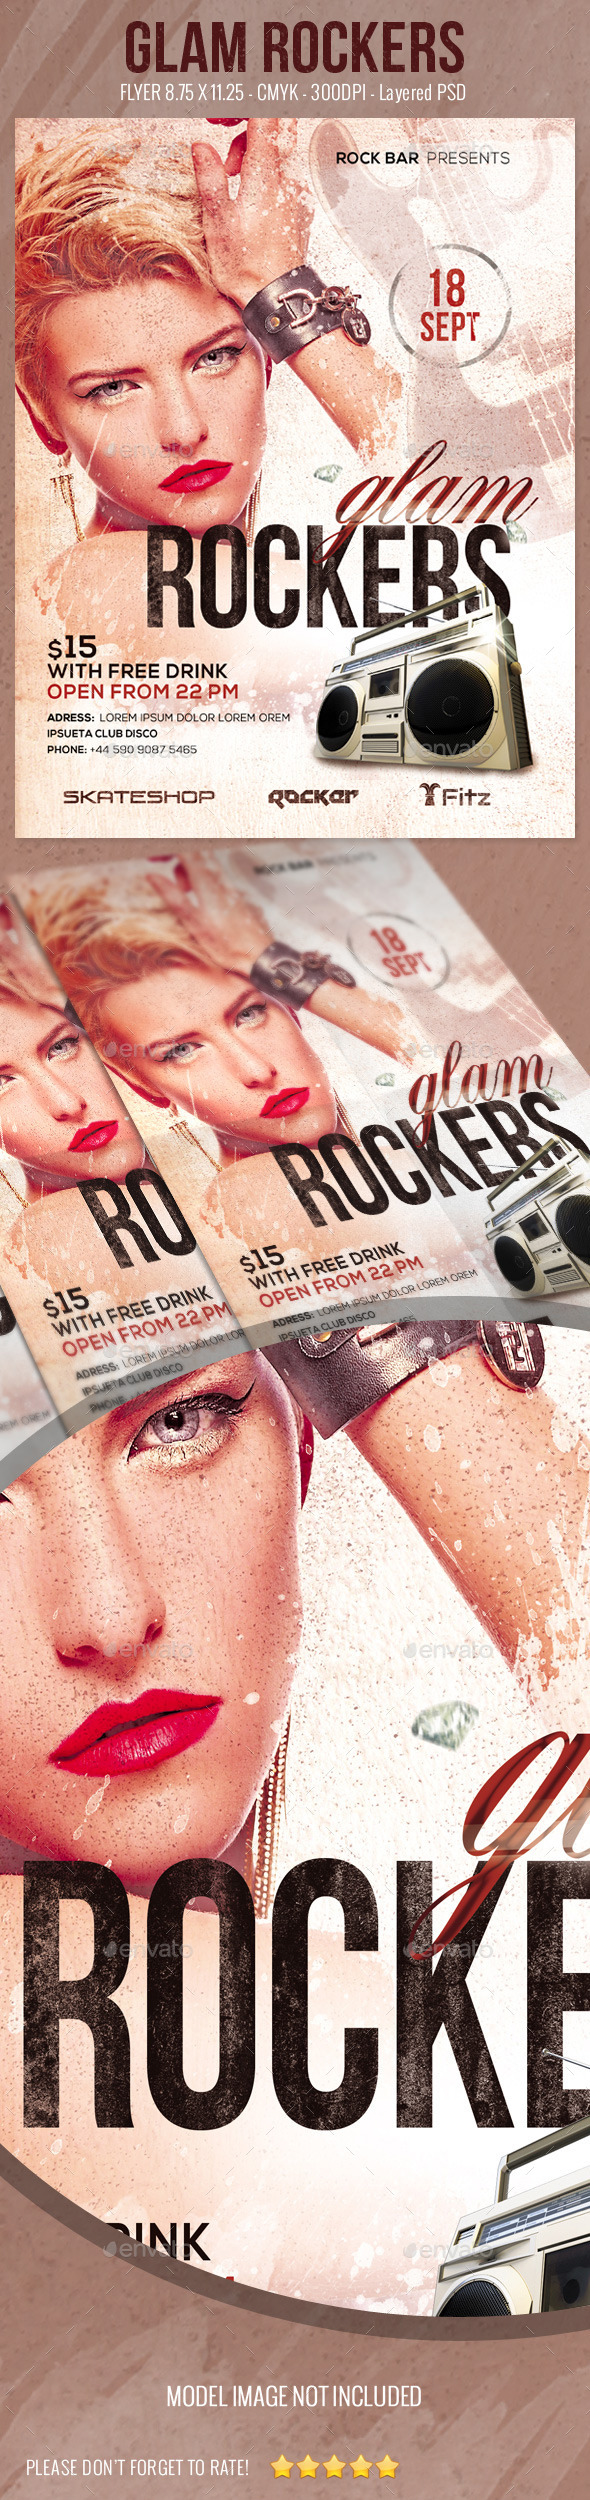 Glam Rockers Flyer - Clubs & Parties Events